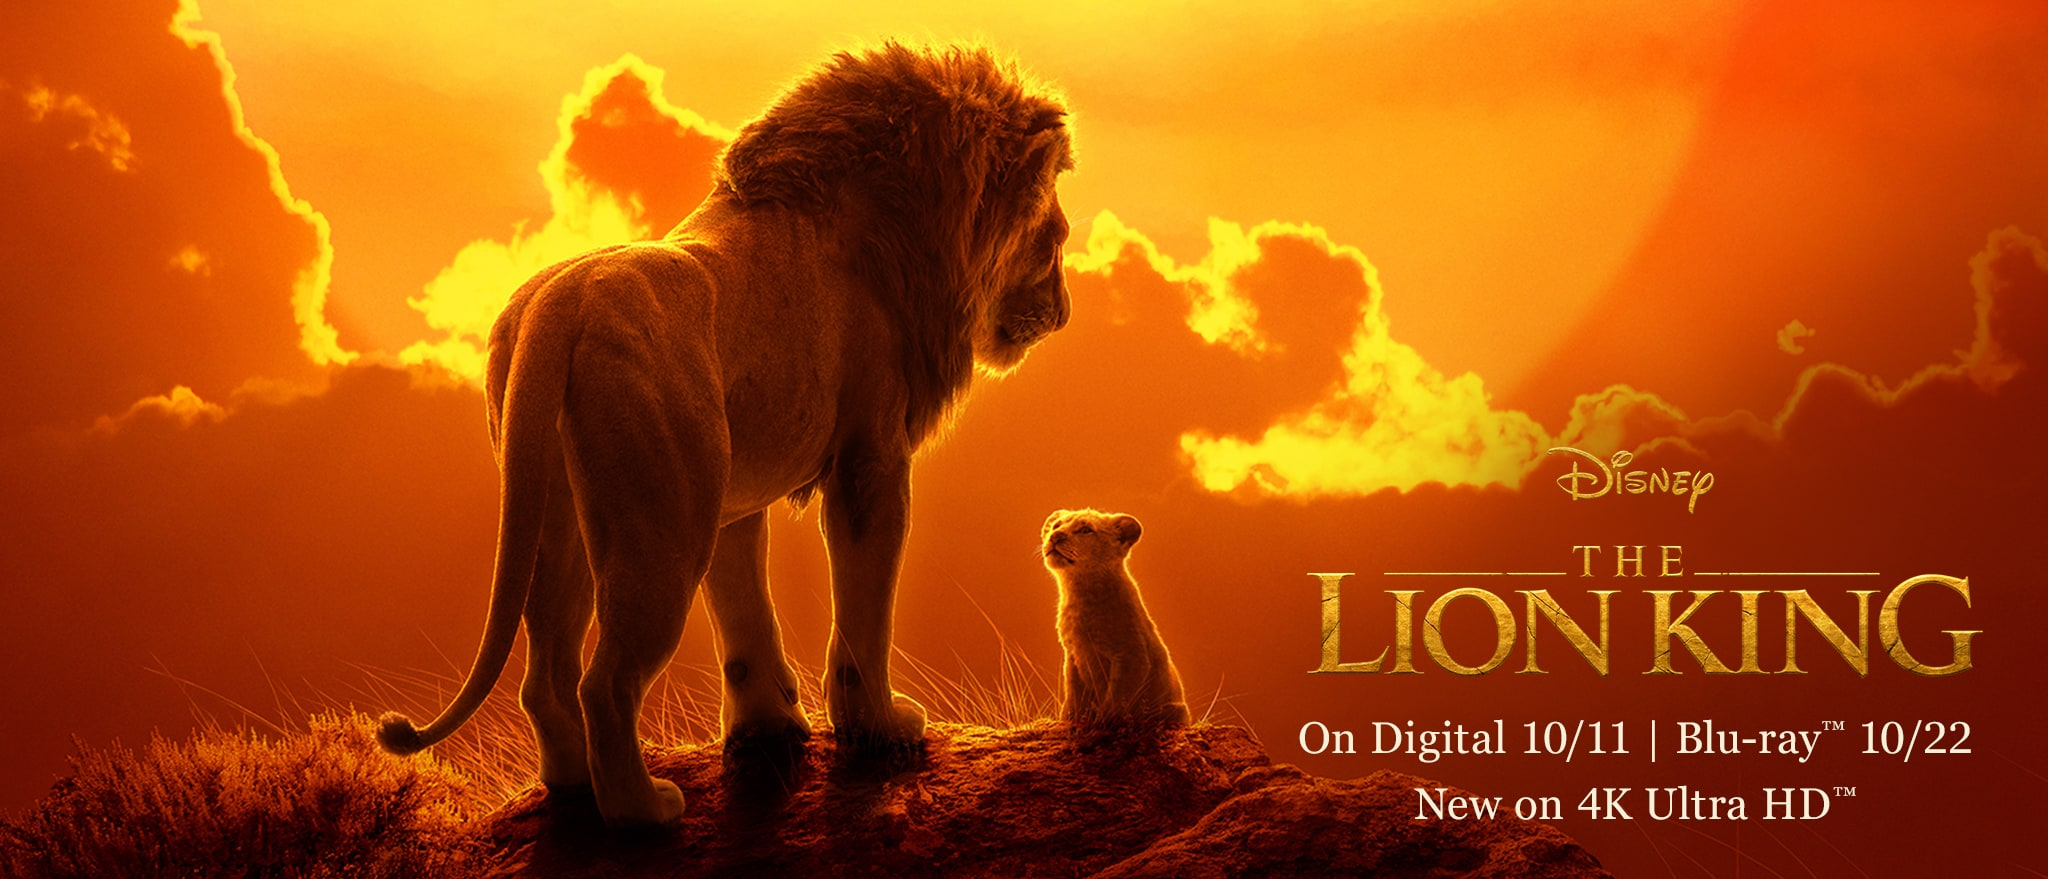 Disney - The Lion King - On digital October 11, on Blu-ray October 22. New on 4K Ultra HD.